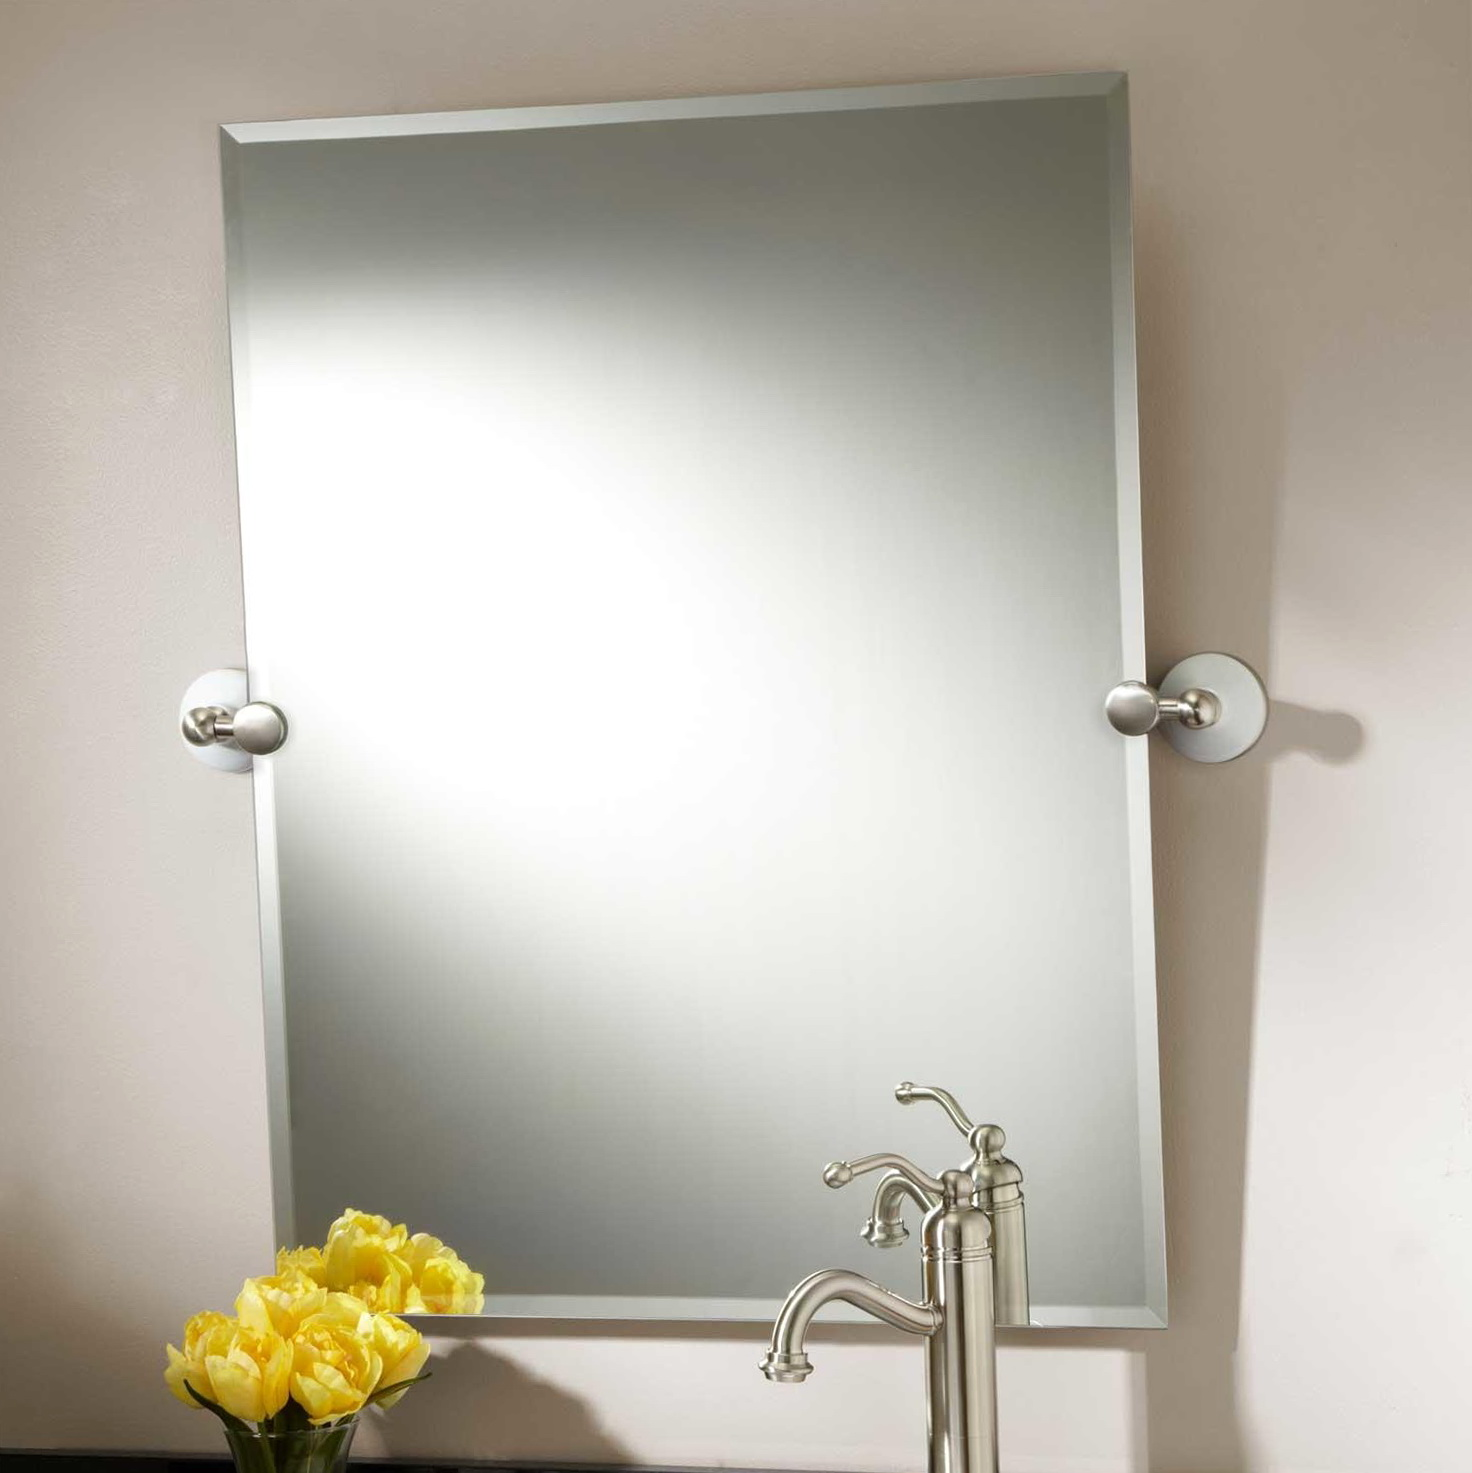 Brushed nickel framed bathroom mirror home design ideas for Bathroom mirrors brushed nickel